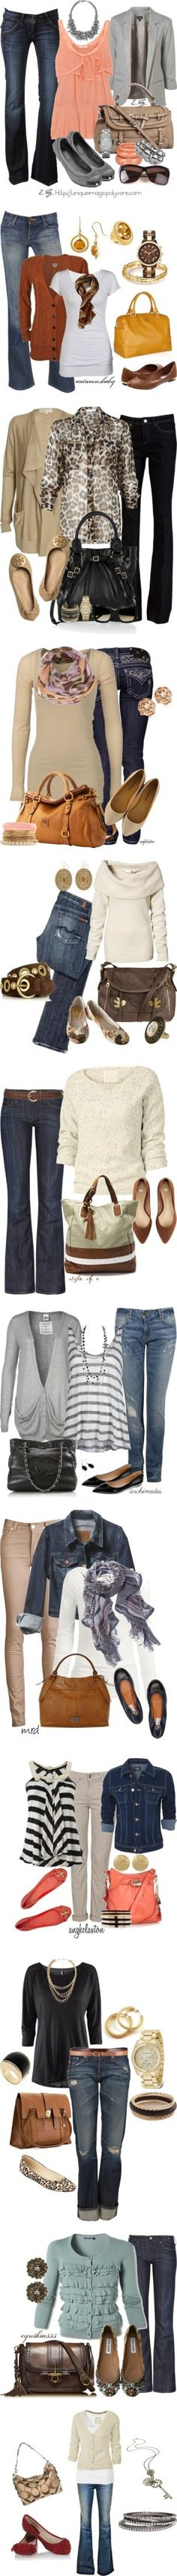 """Ballet Flats For Fall"" by esha2001 on Polyvore - Click image to find more Home Decor Pinterest pins"